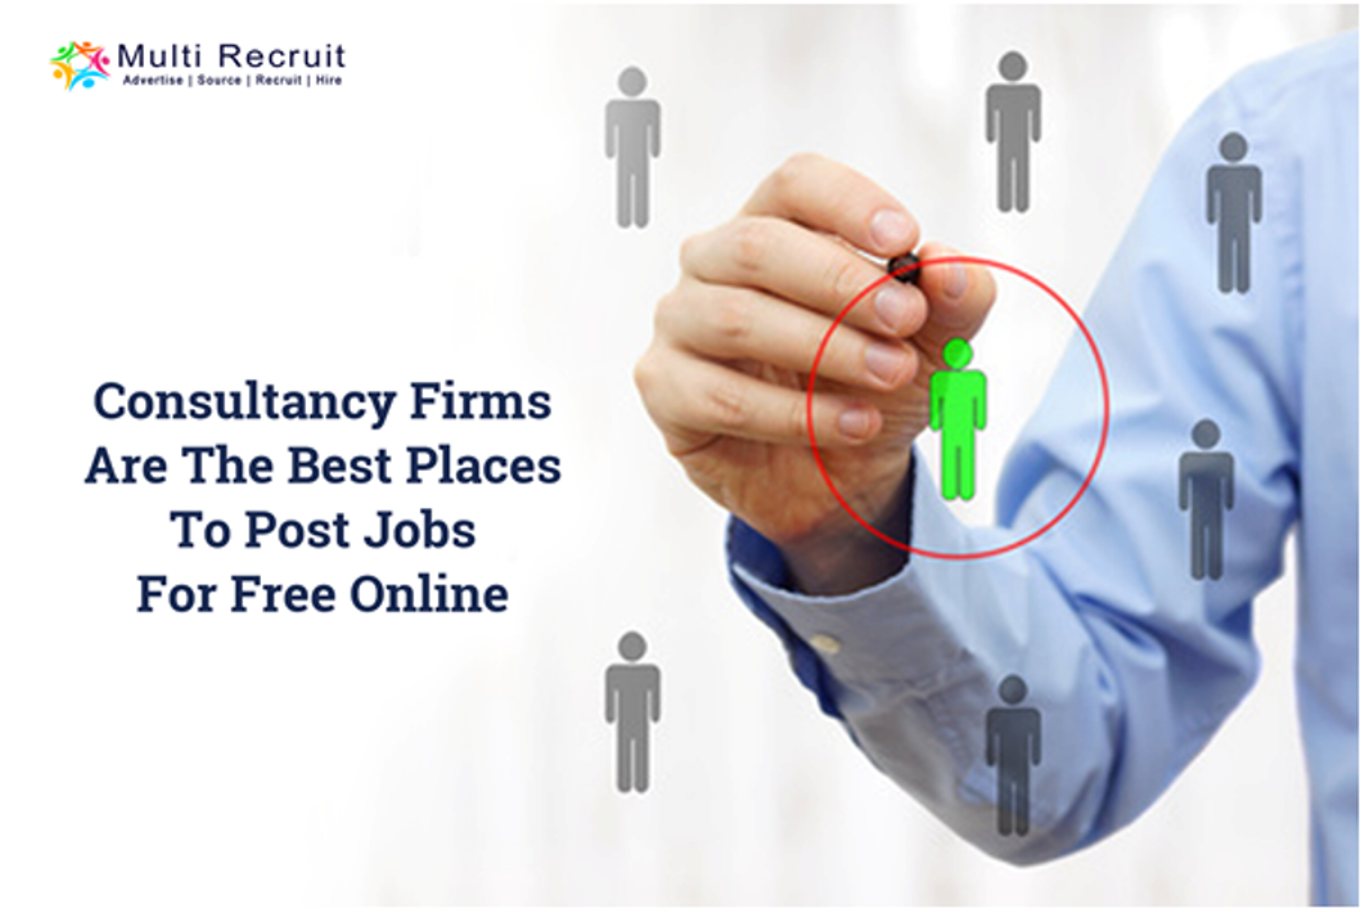 Consultancy Firms are the Best Places to Post Jobs For Free Online